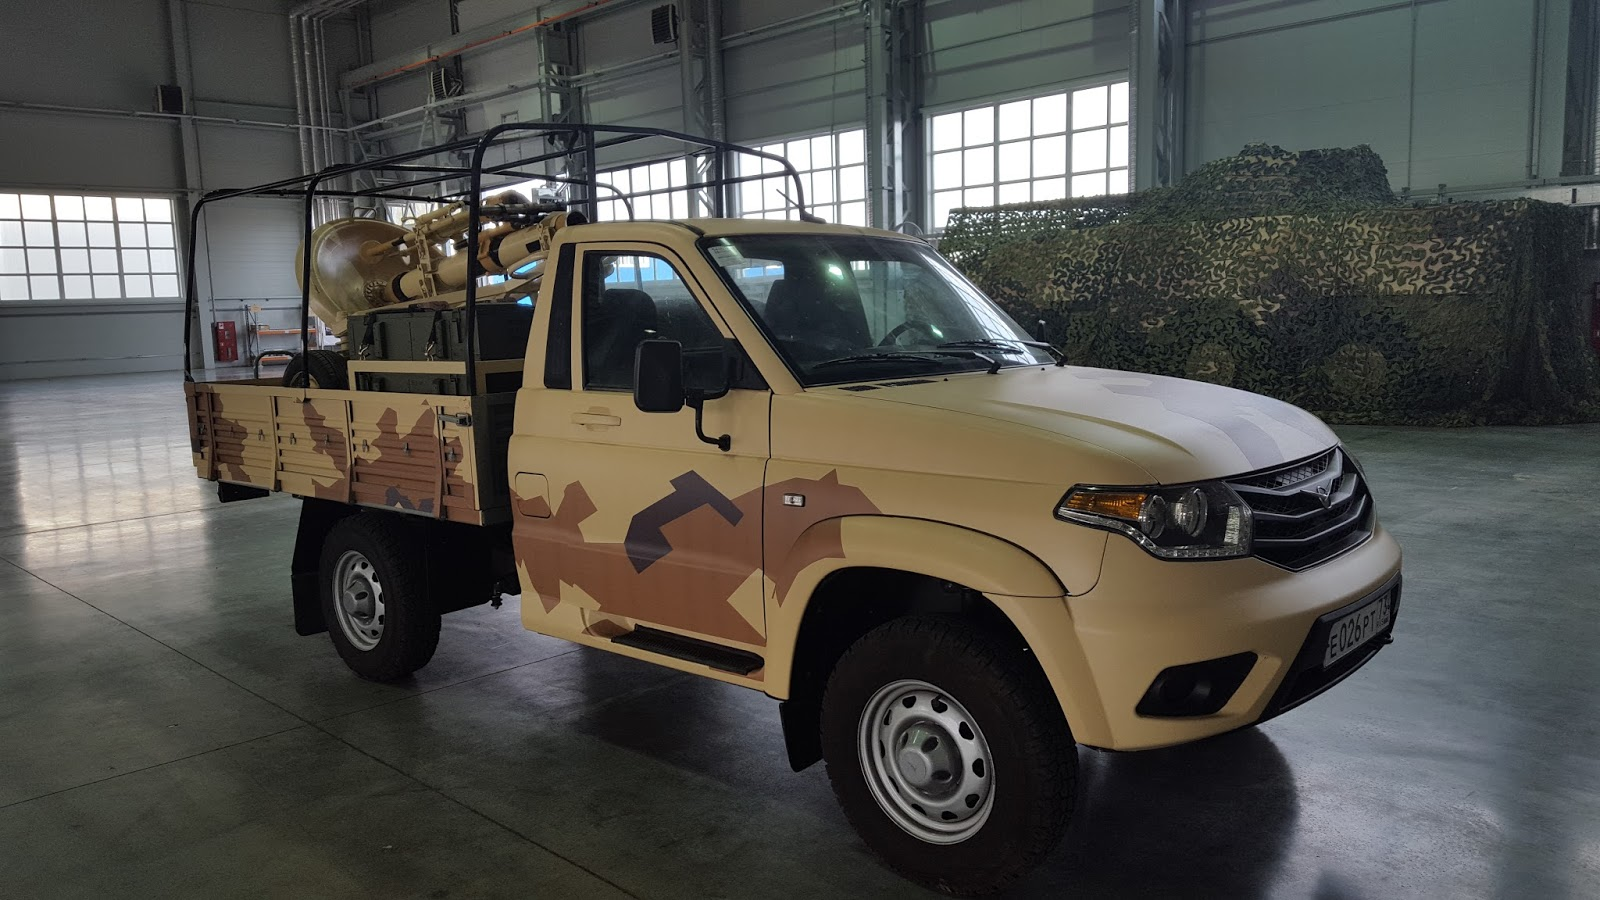 New Details About Usage of Russian-Made UAZ Patriot Technical Vehicles on Syrian Battlefield